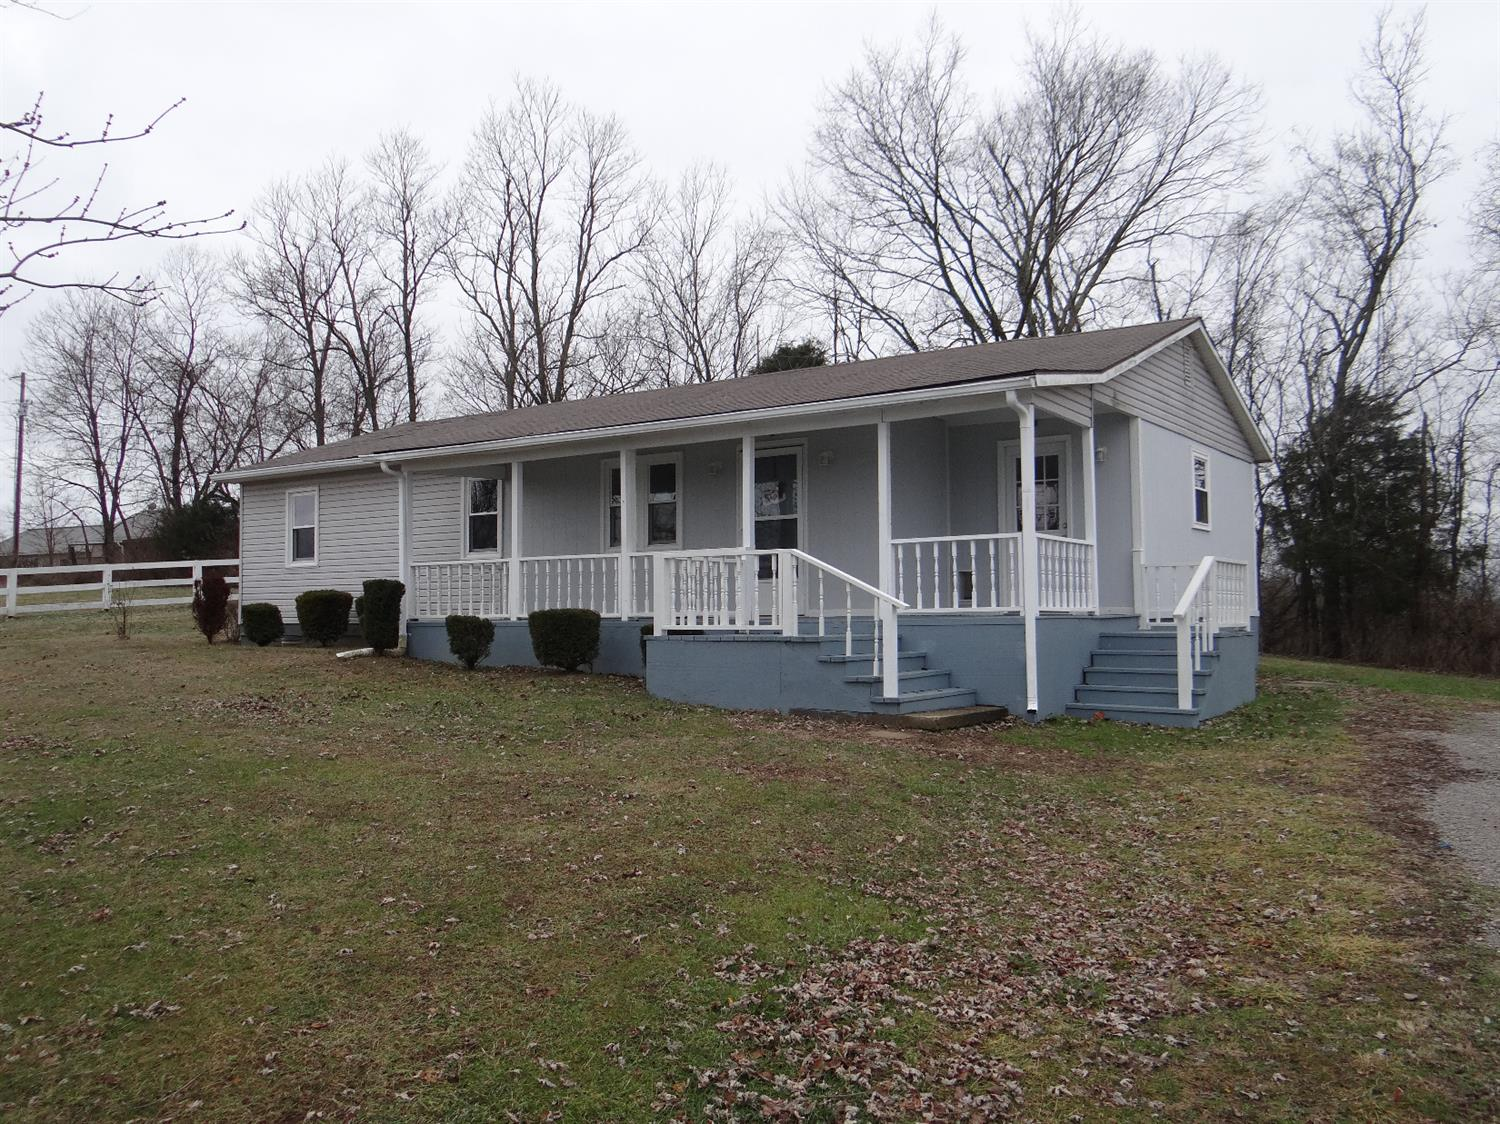 Home For Sale at 5227 Lexington Rd, Winchester, KY 40391